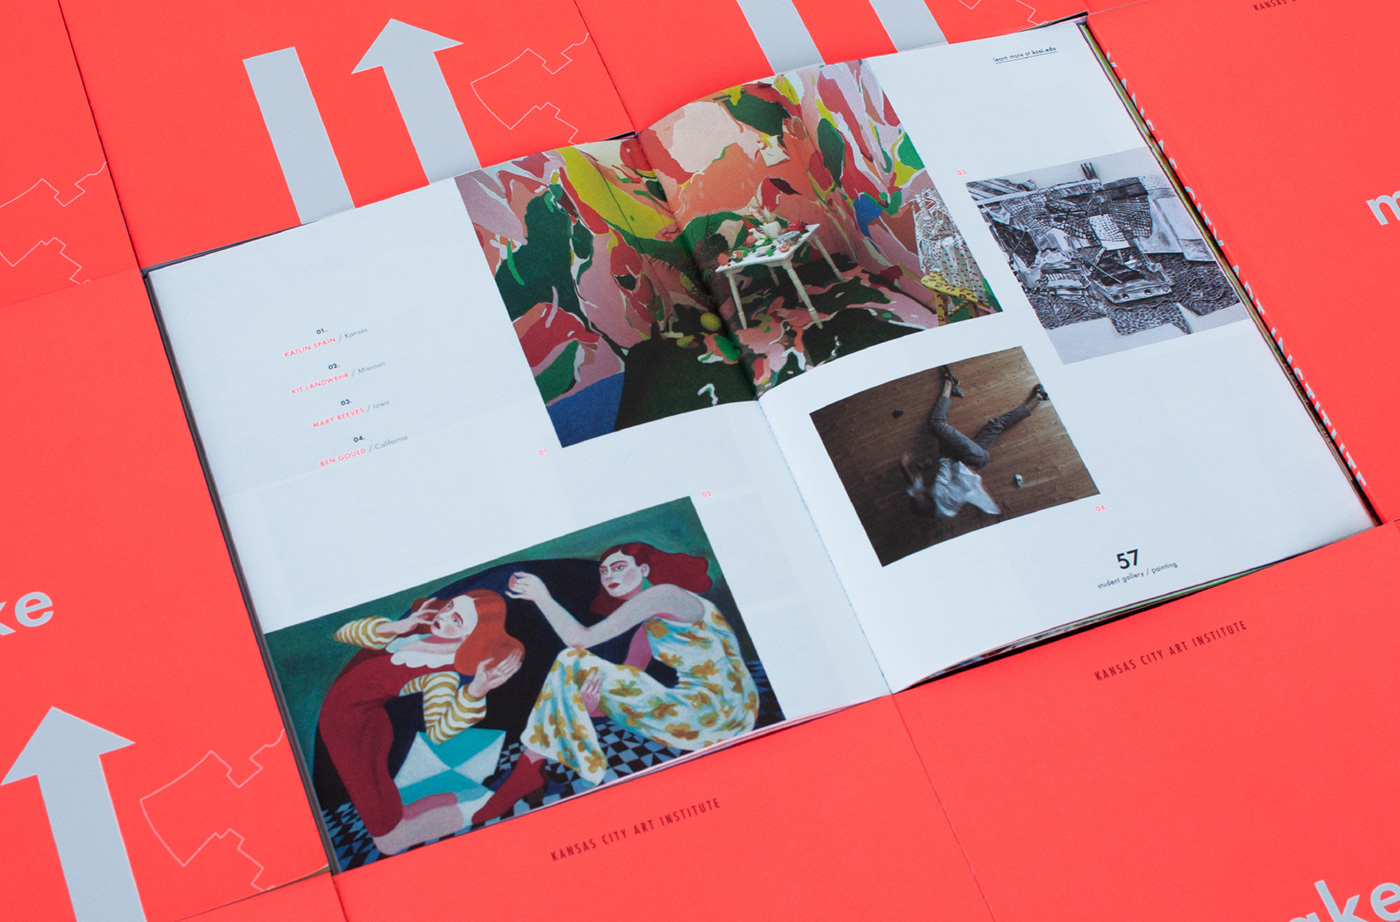 Kansas City Art Institute View Book On Behance